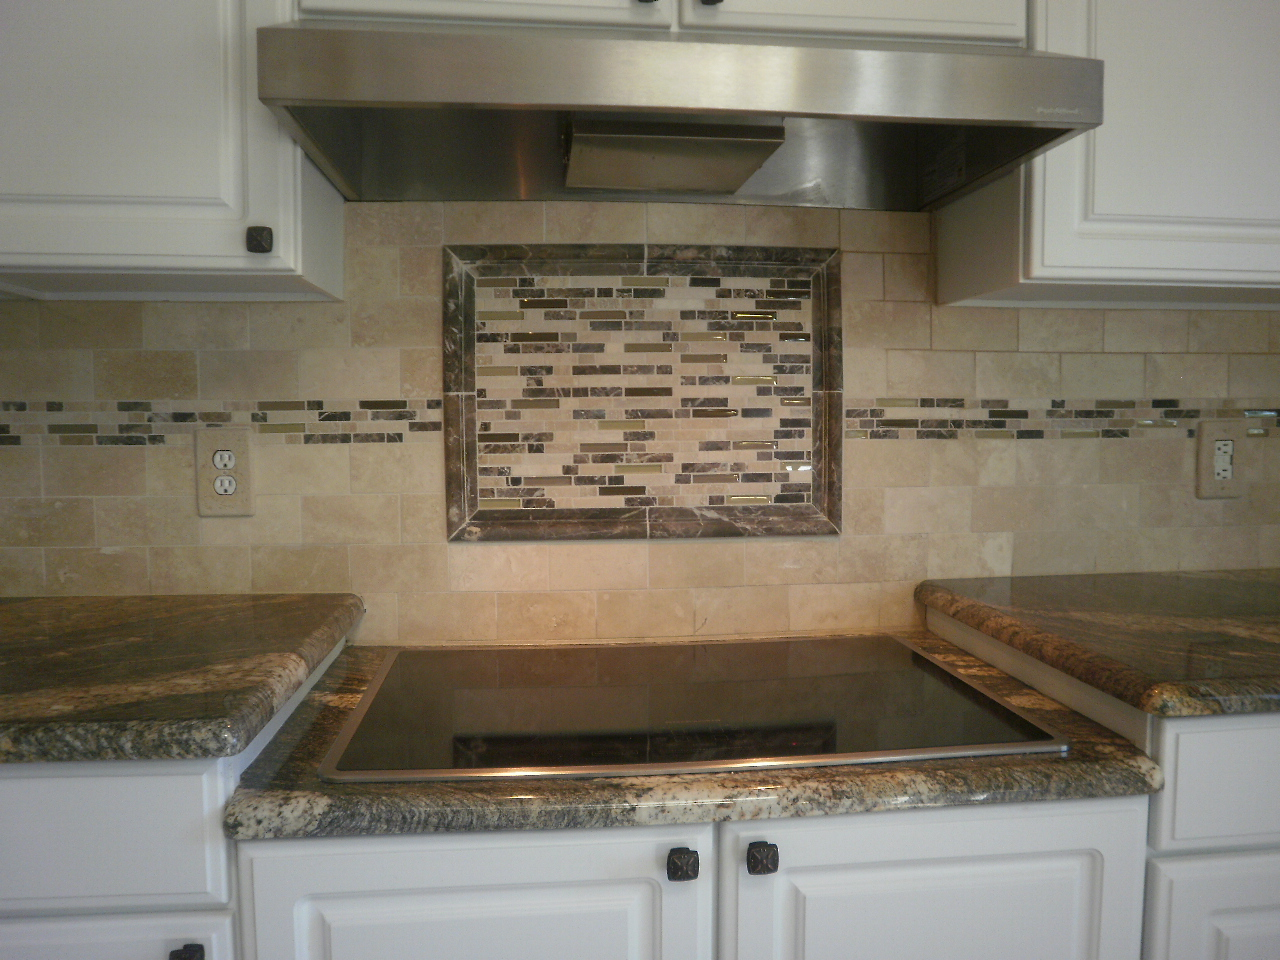 Kitchen backsplash ideas glass tile afreakatheart for Glass tile kitchen backsplash ideas